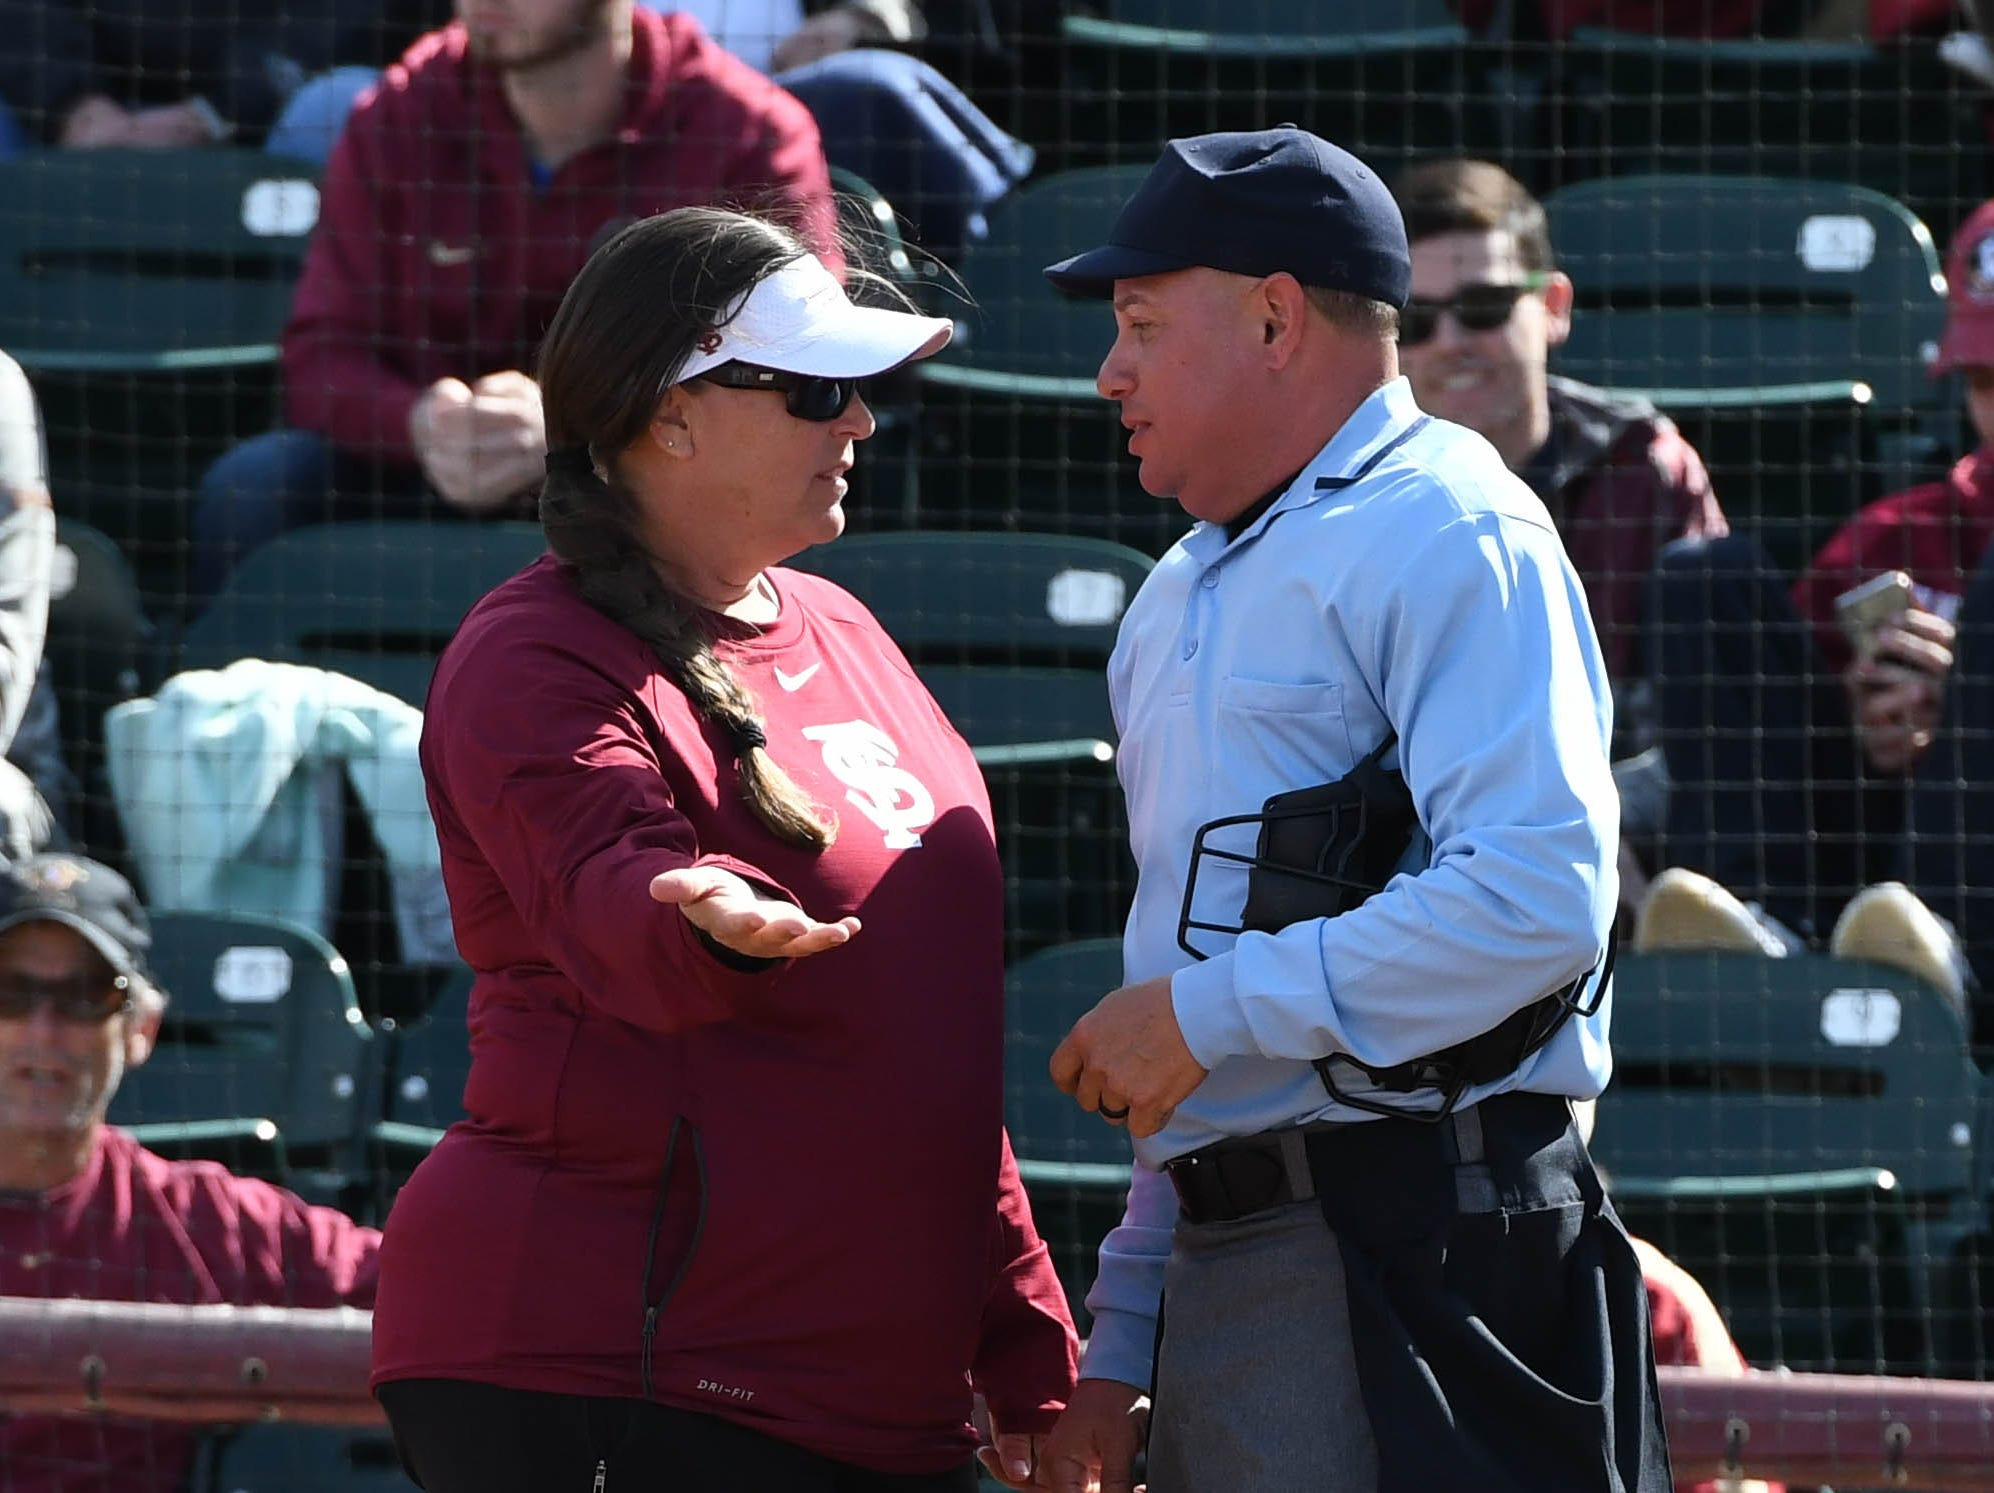 FSU head coach Lonni Alameda talking to the umpire in FSU's game against UNCG at Joanne Graf field on February 9, 2019.